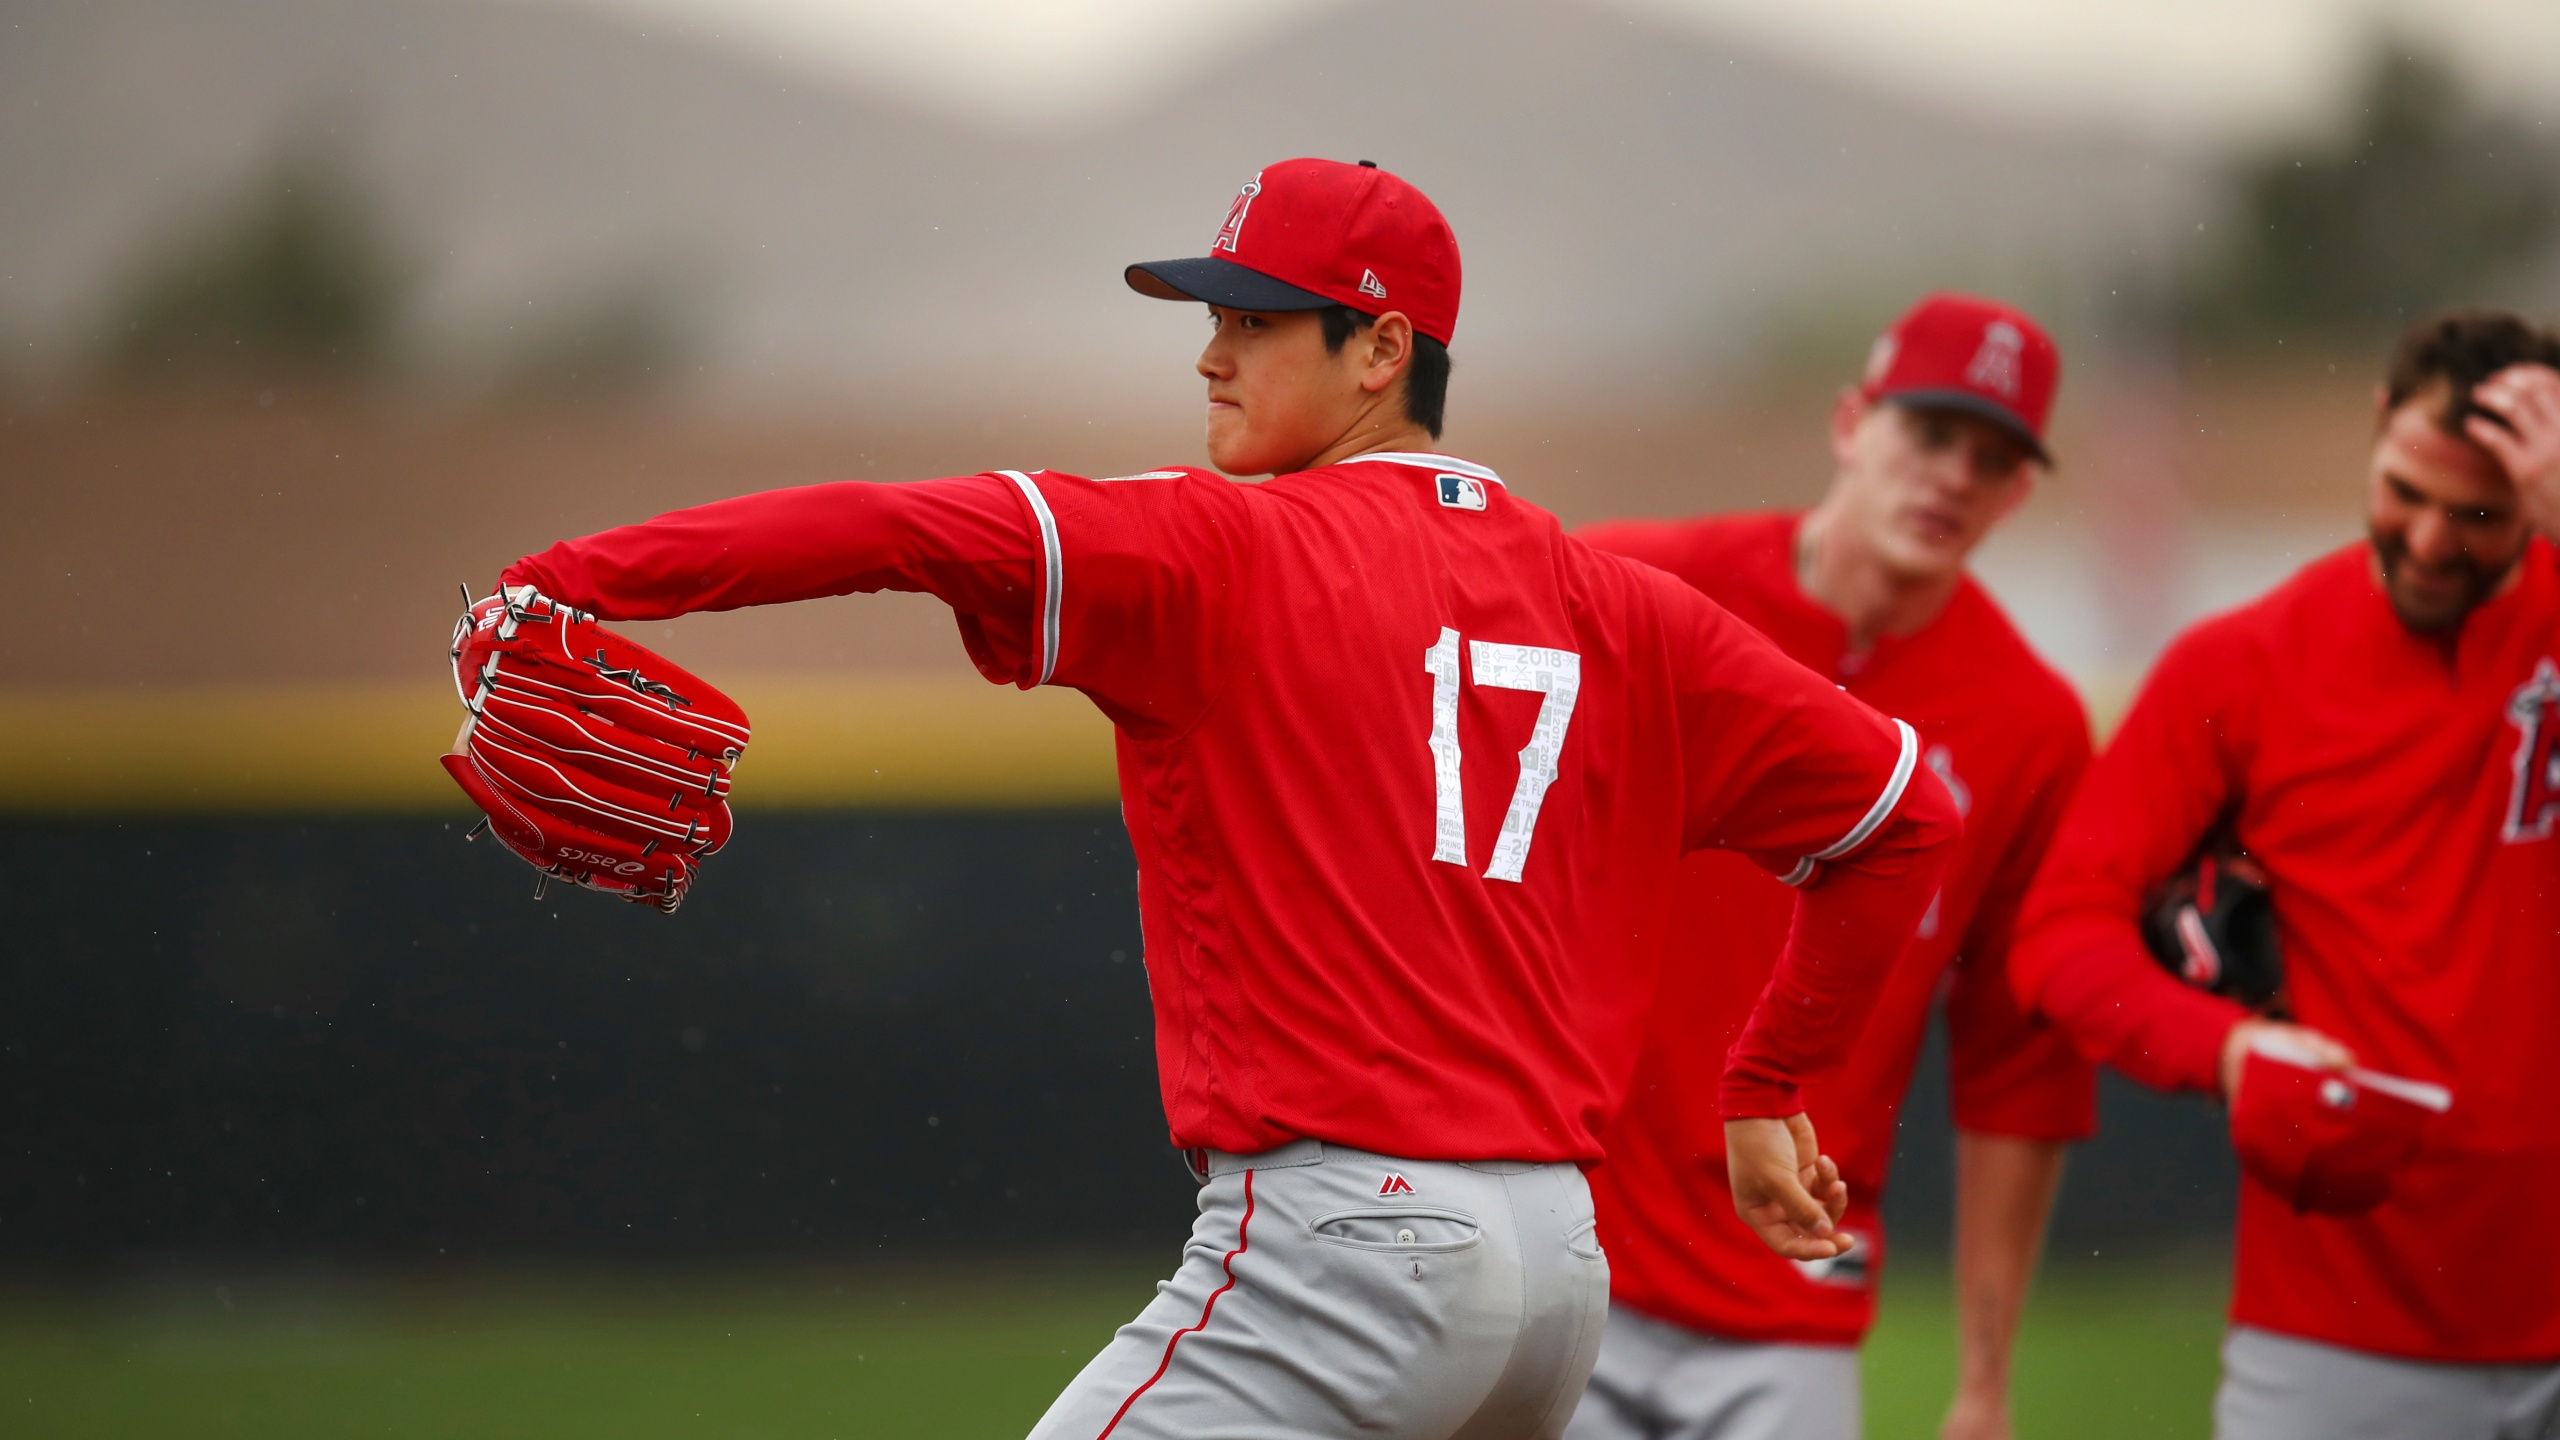 Angels_Ohtani_First_Day_Baseball_83444-159532.jpg52221073